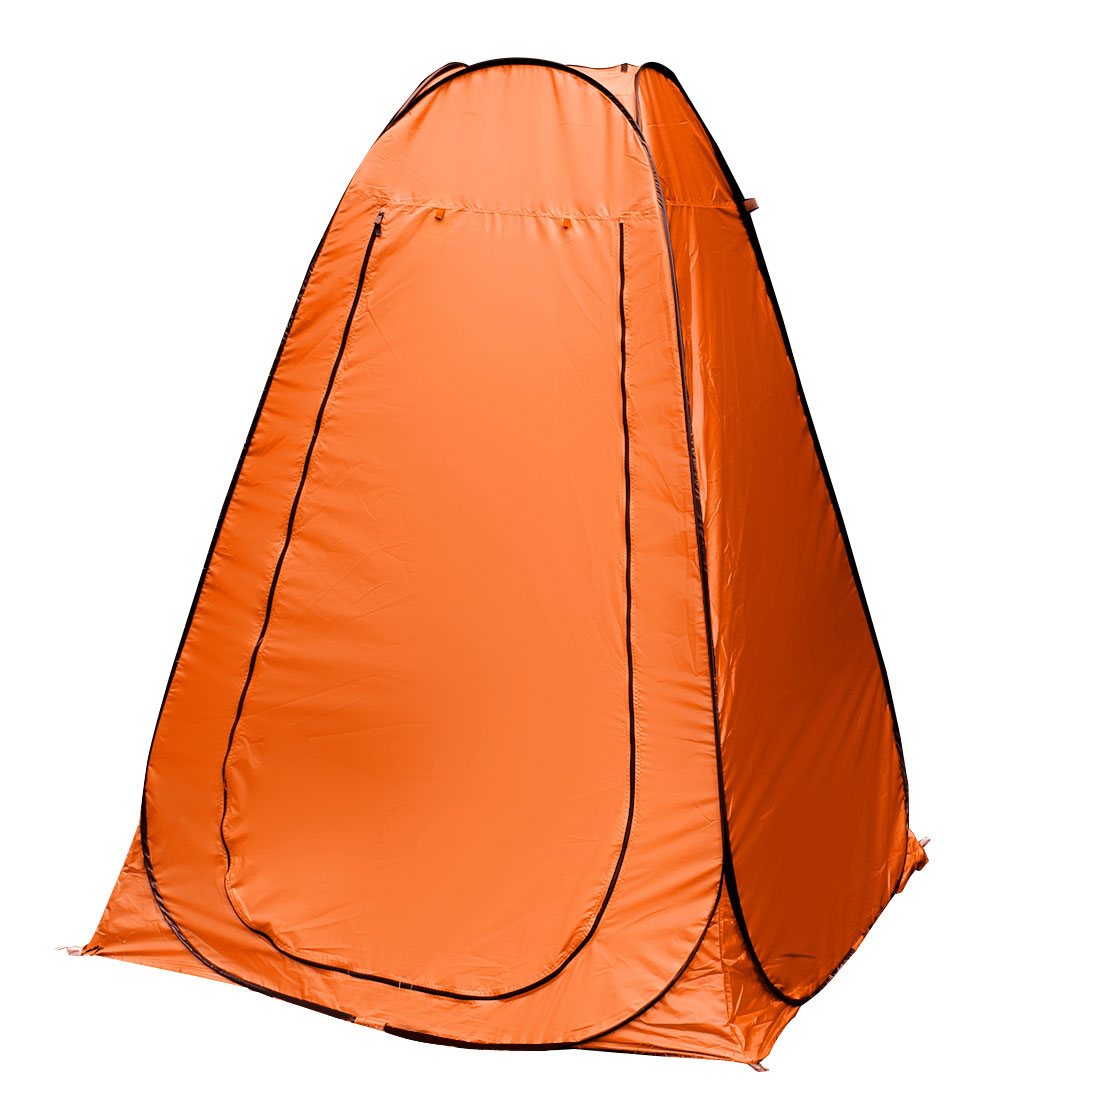 Click here to buy Outdoor Portable Pop-Up Camping Beach Toilet Dressing Changing Room Tent Orange.